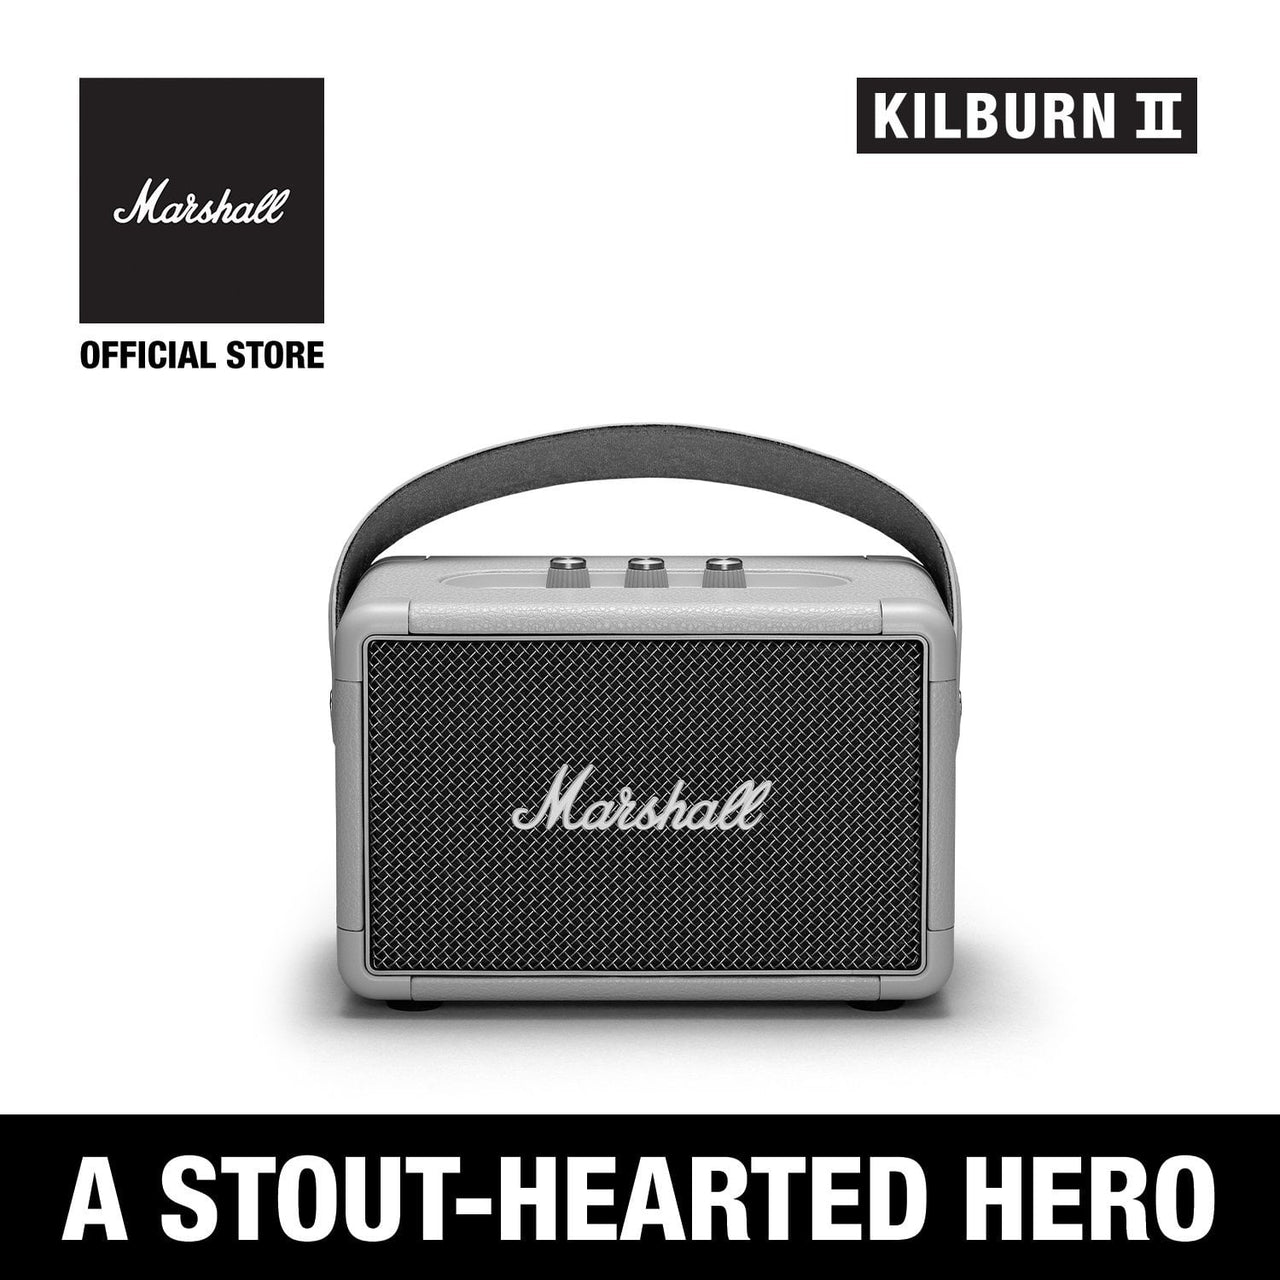 Kilburn II Grey [EVENT EXCLUSIVE], Marshall, Marshall, ASH Asia